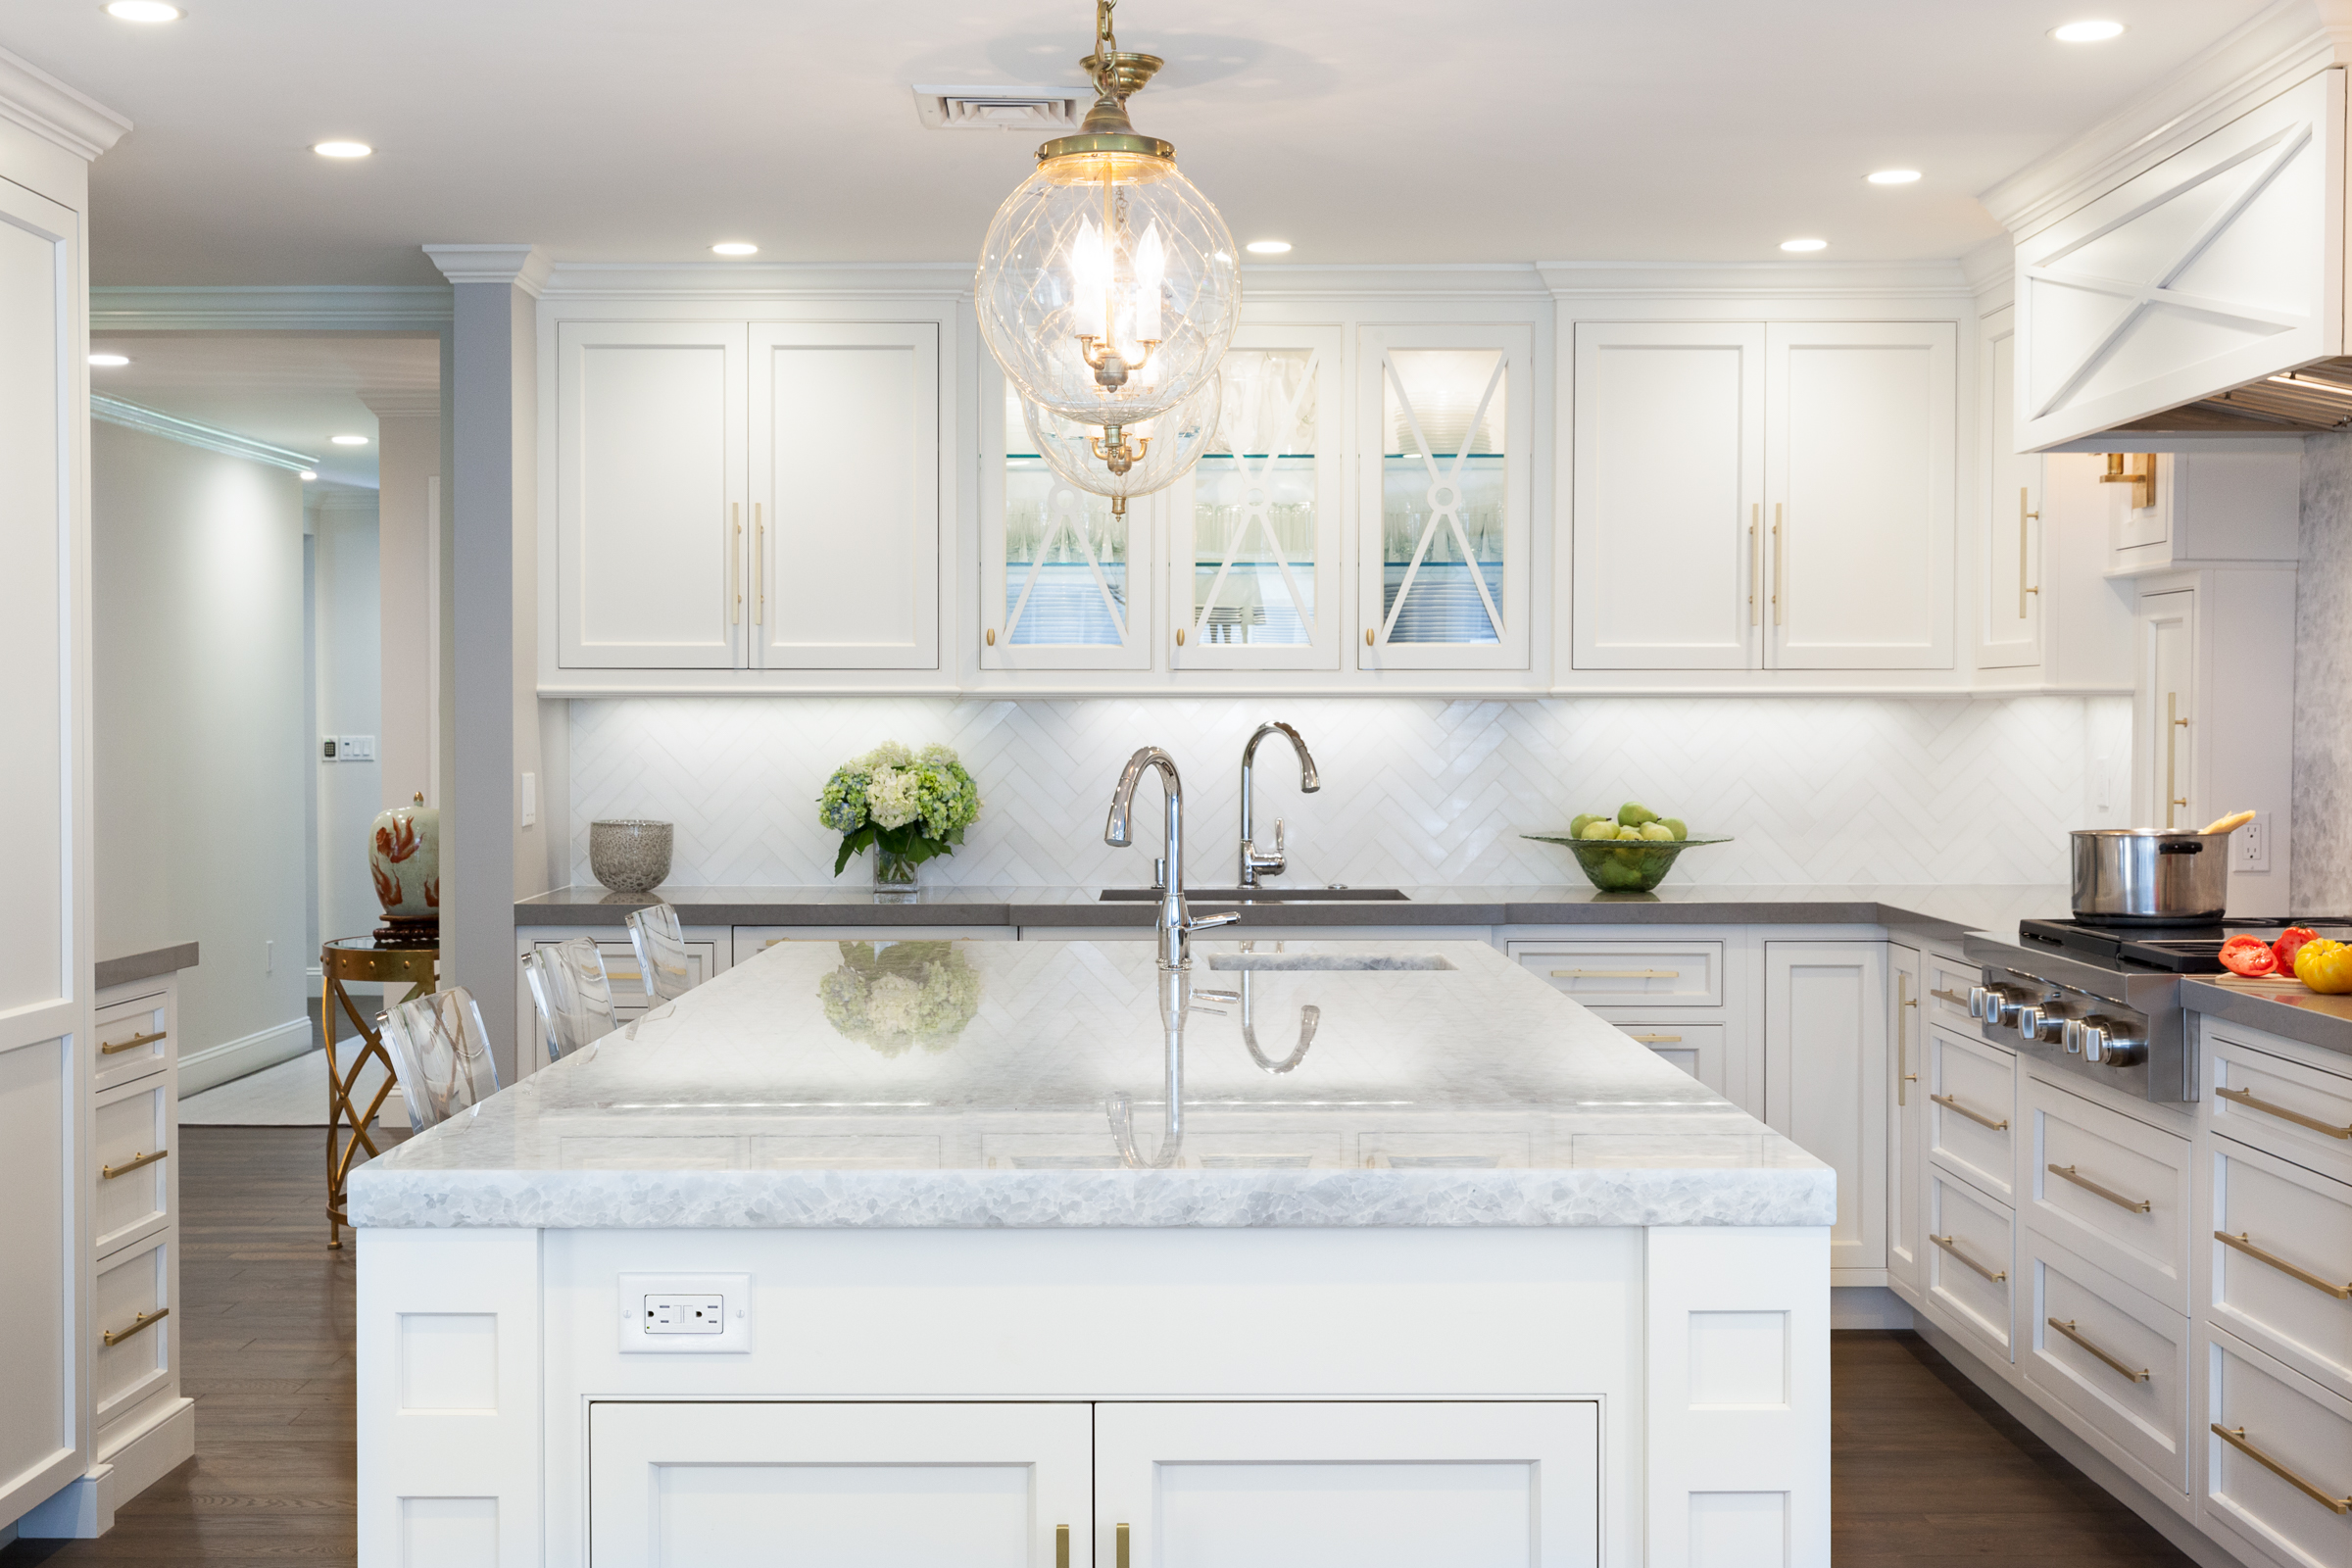 Meet Samantha Elfland Of Metropolitan Cabinets Countertops In Norwood Boston Voyager